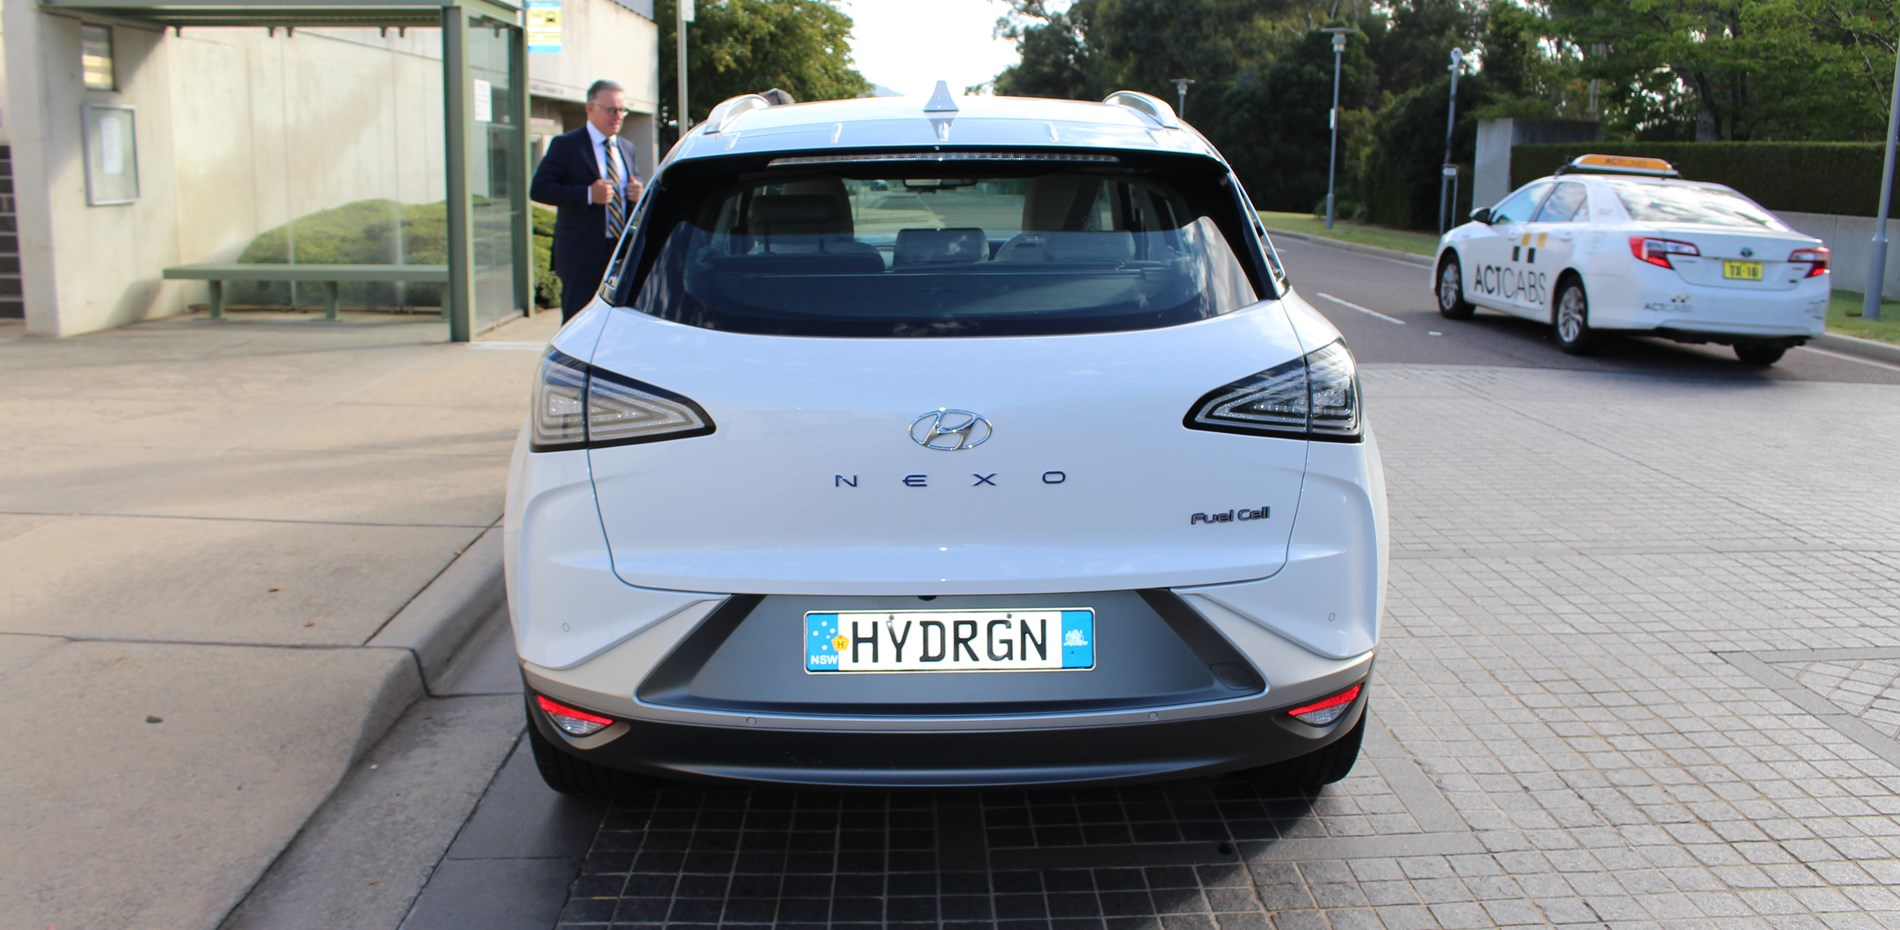 Canberra Report - Hydrogen Technology is Real and Ready - Wednesday, 24 February 2021 Main Image